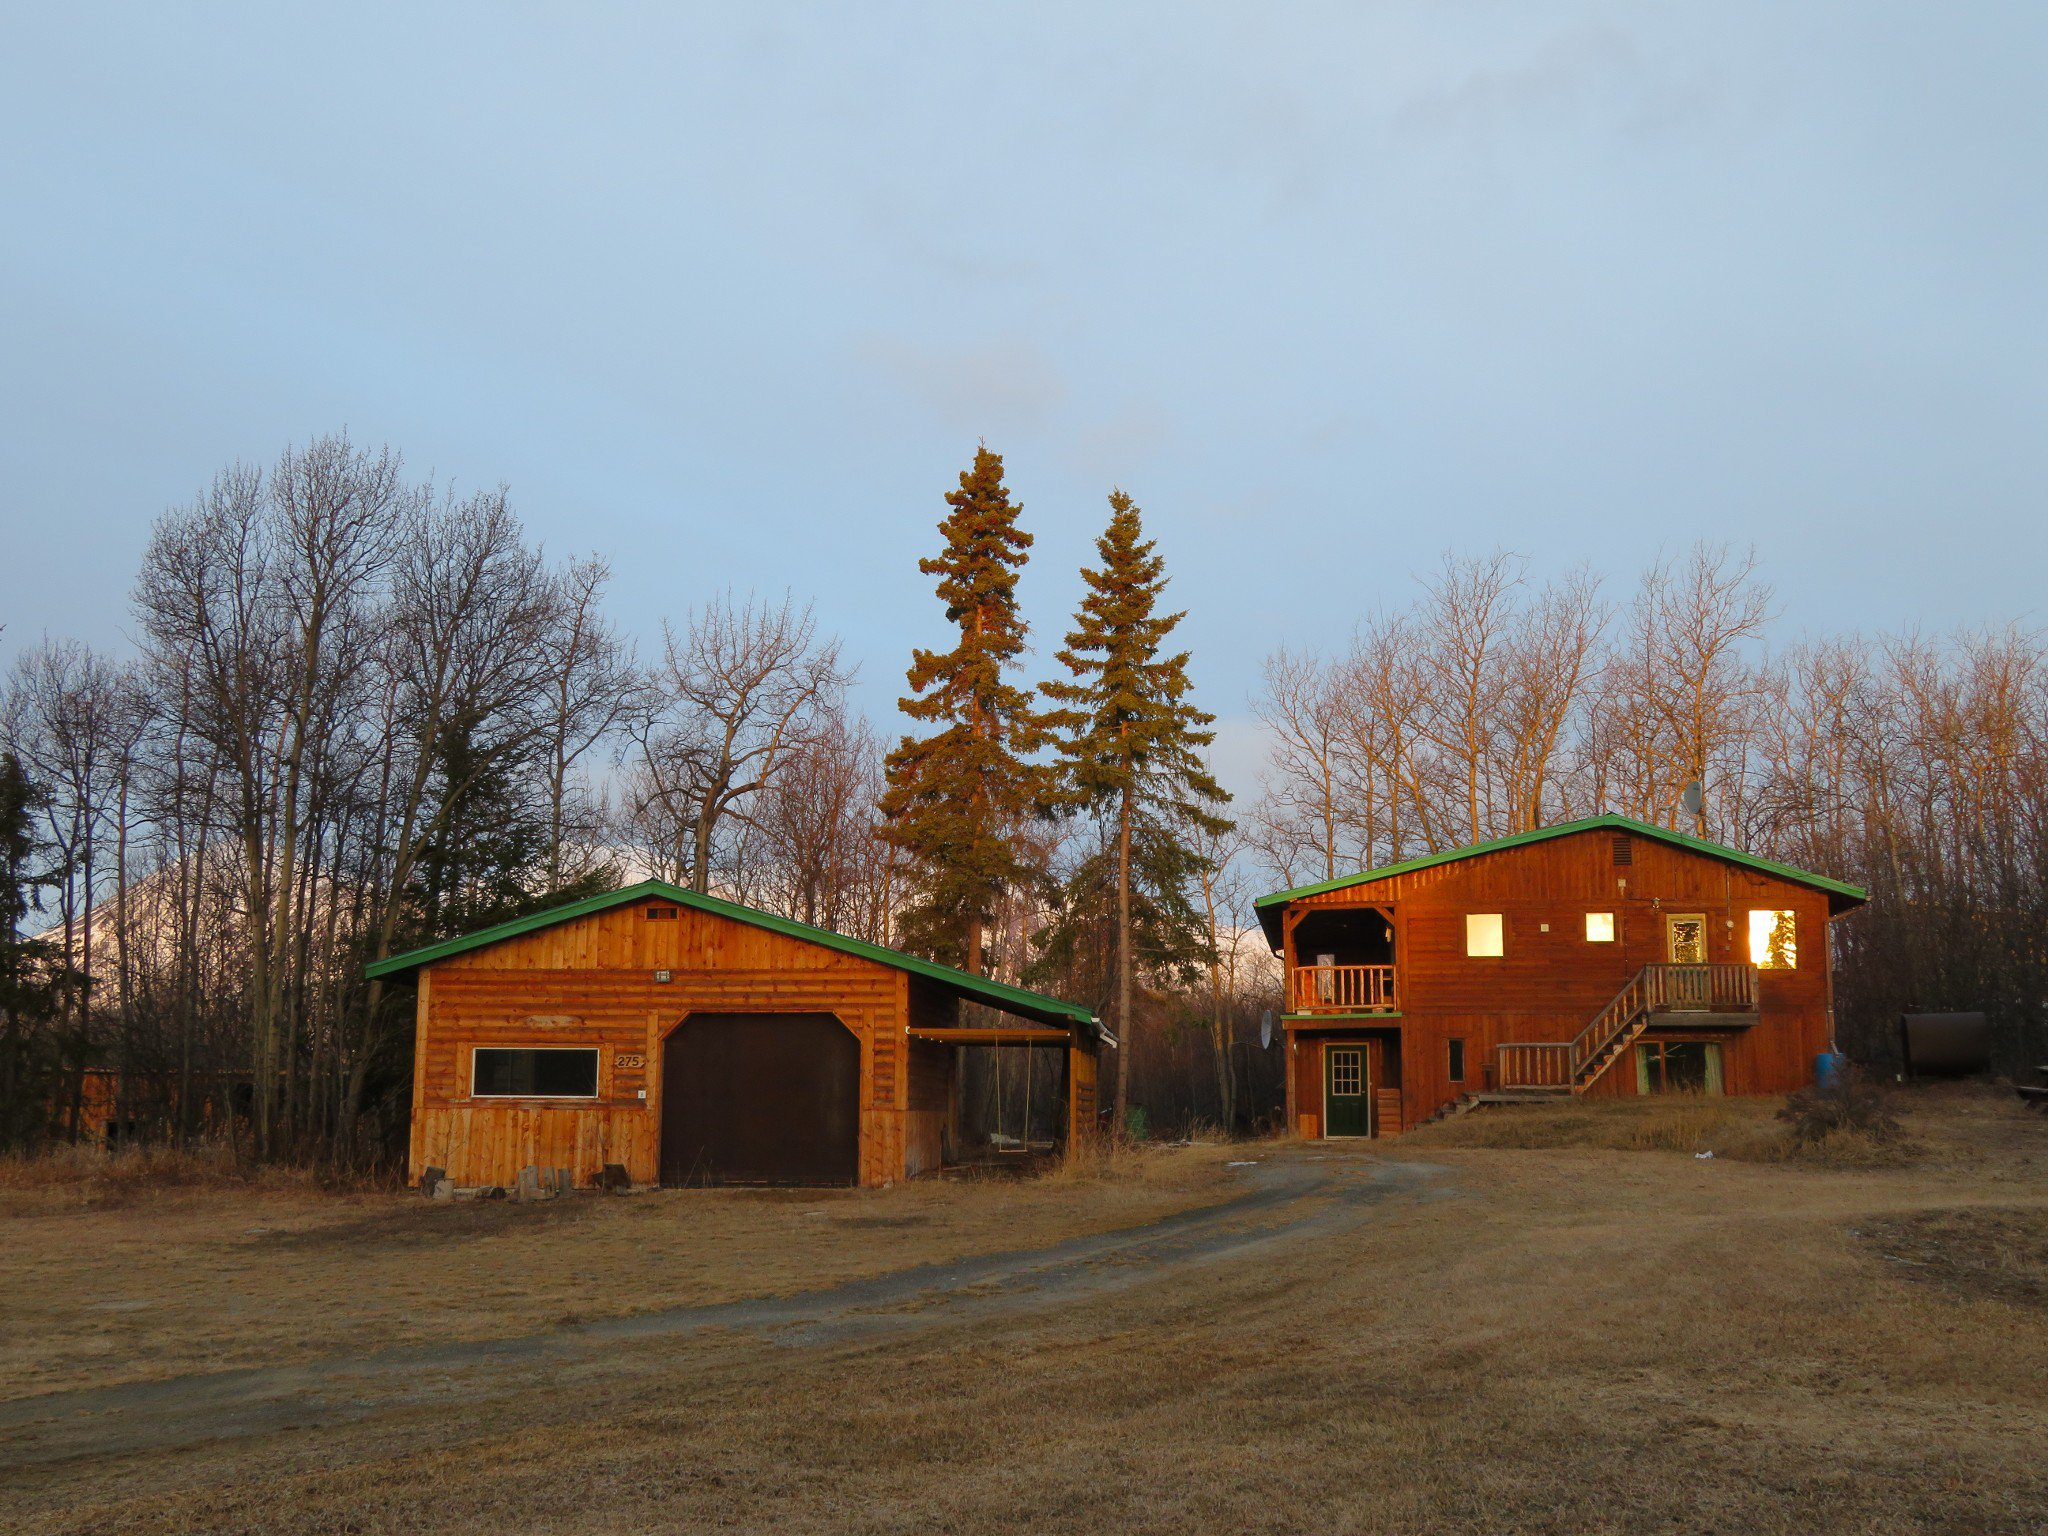 Main Photo: LOT 4 1 Street: Atlin House for sale (Terrace (Zone 88))  : MLS®# R2297056